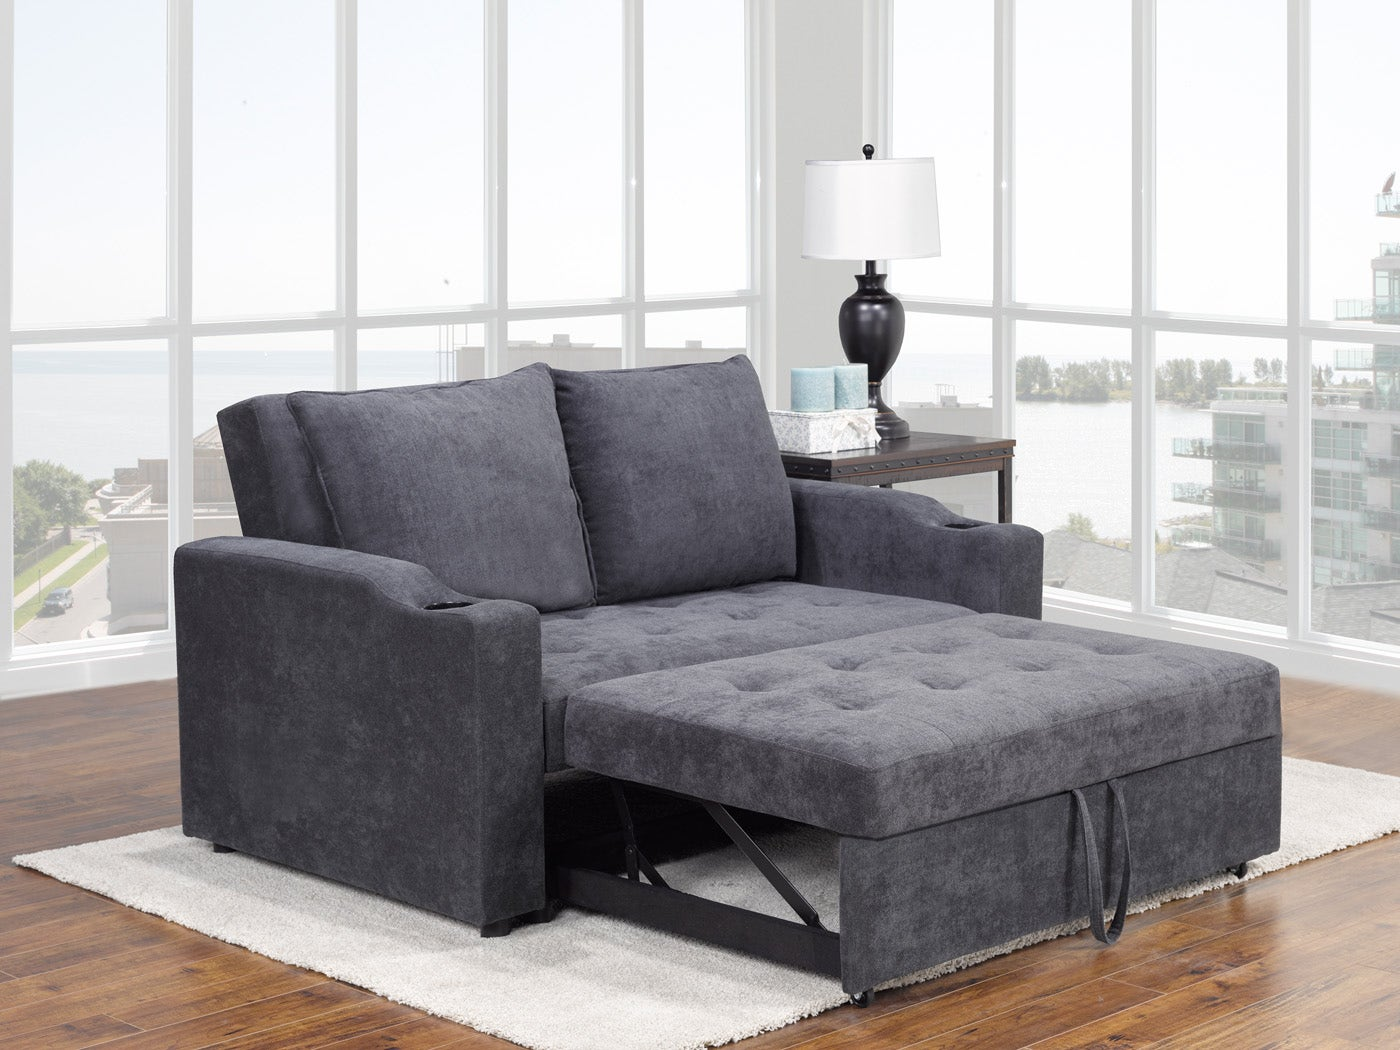 Brassex Fresno Sofa with Pull-Out Bed & Adj. Back in Grey S-5-5